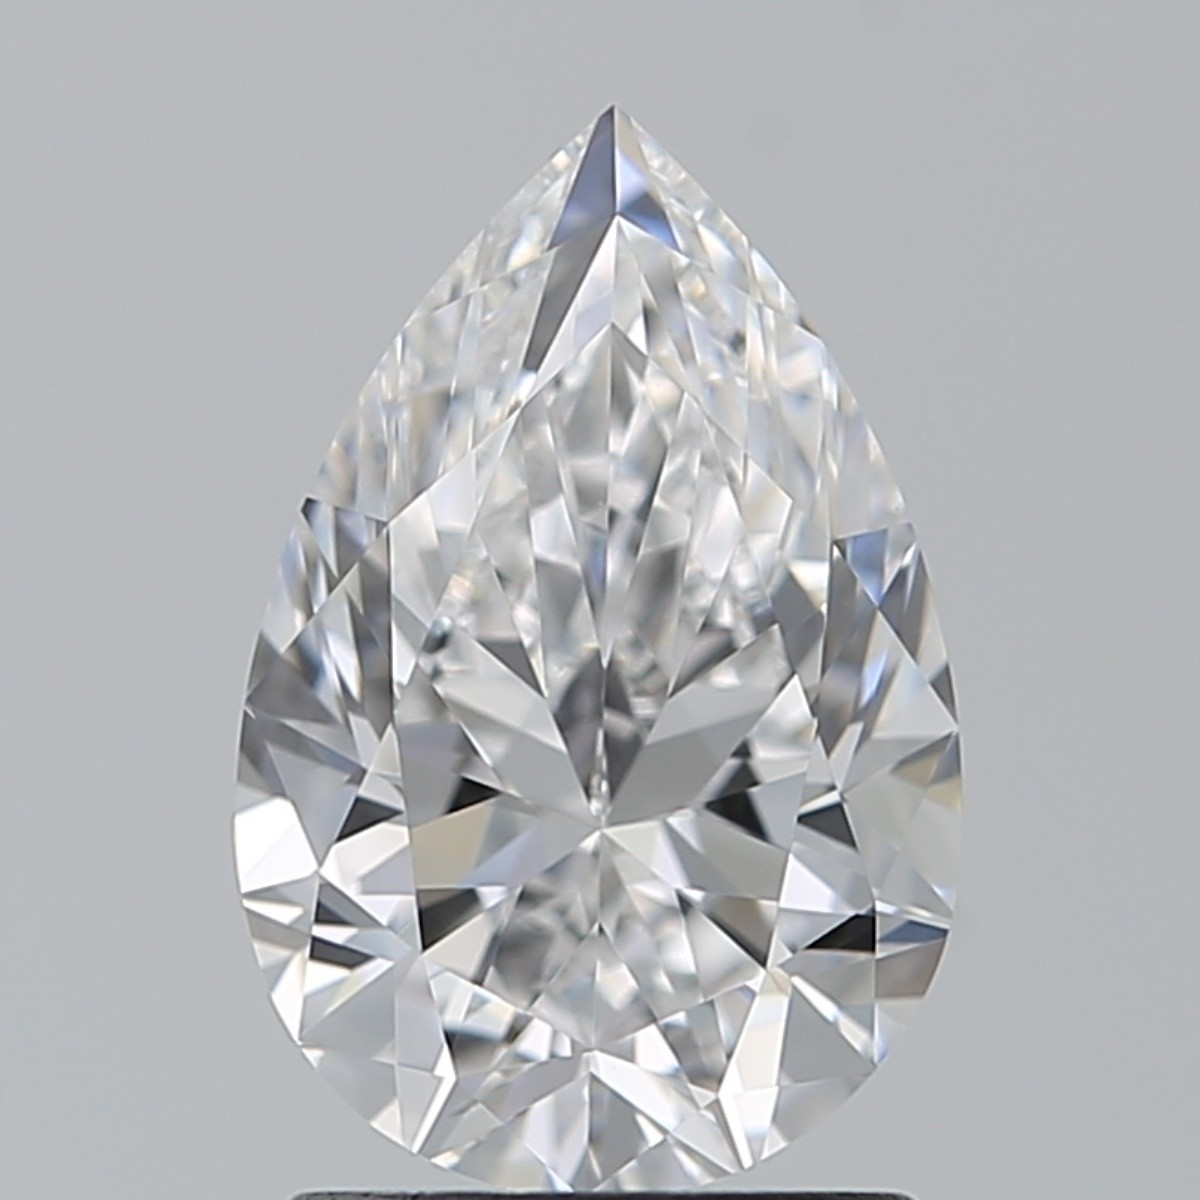 1.51 Carat Pear Diamond (D/VVS2)